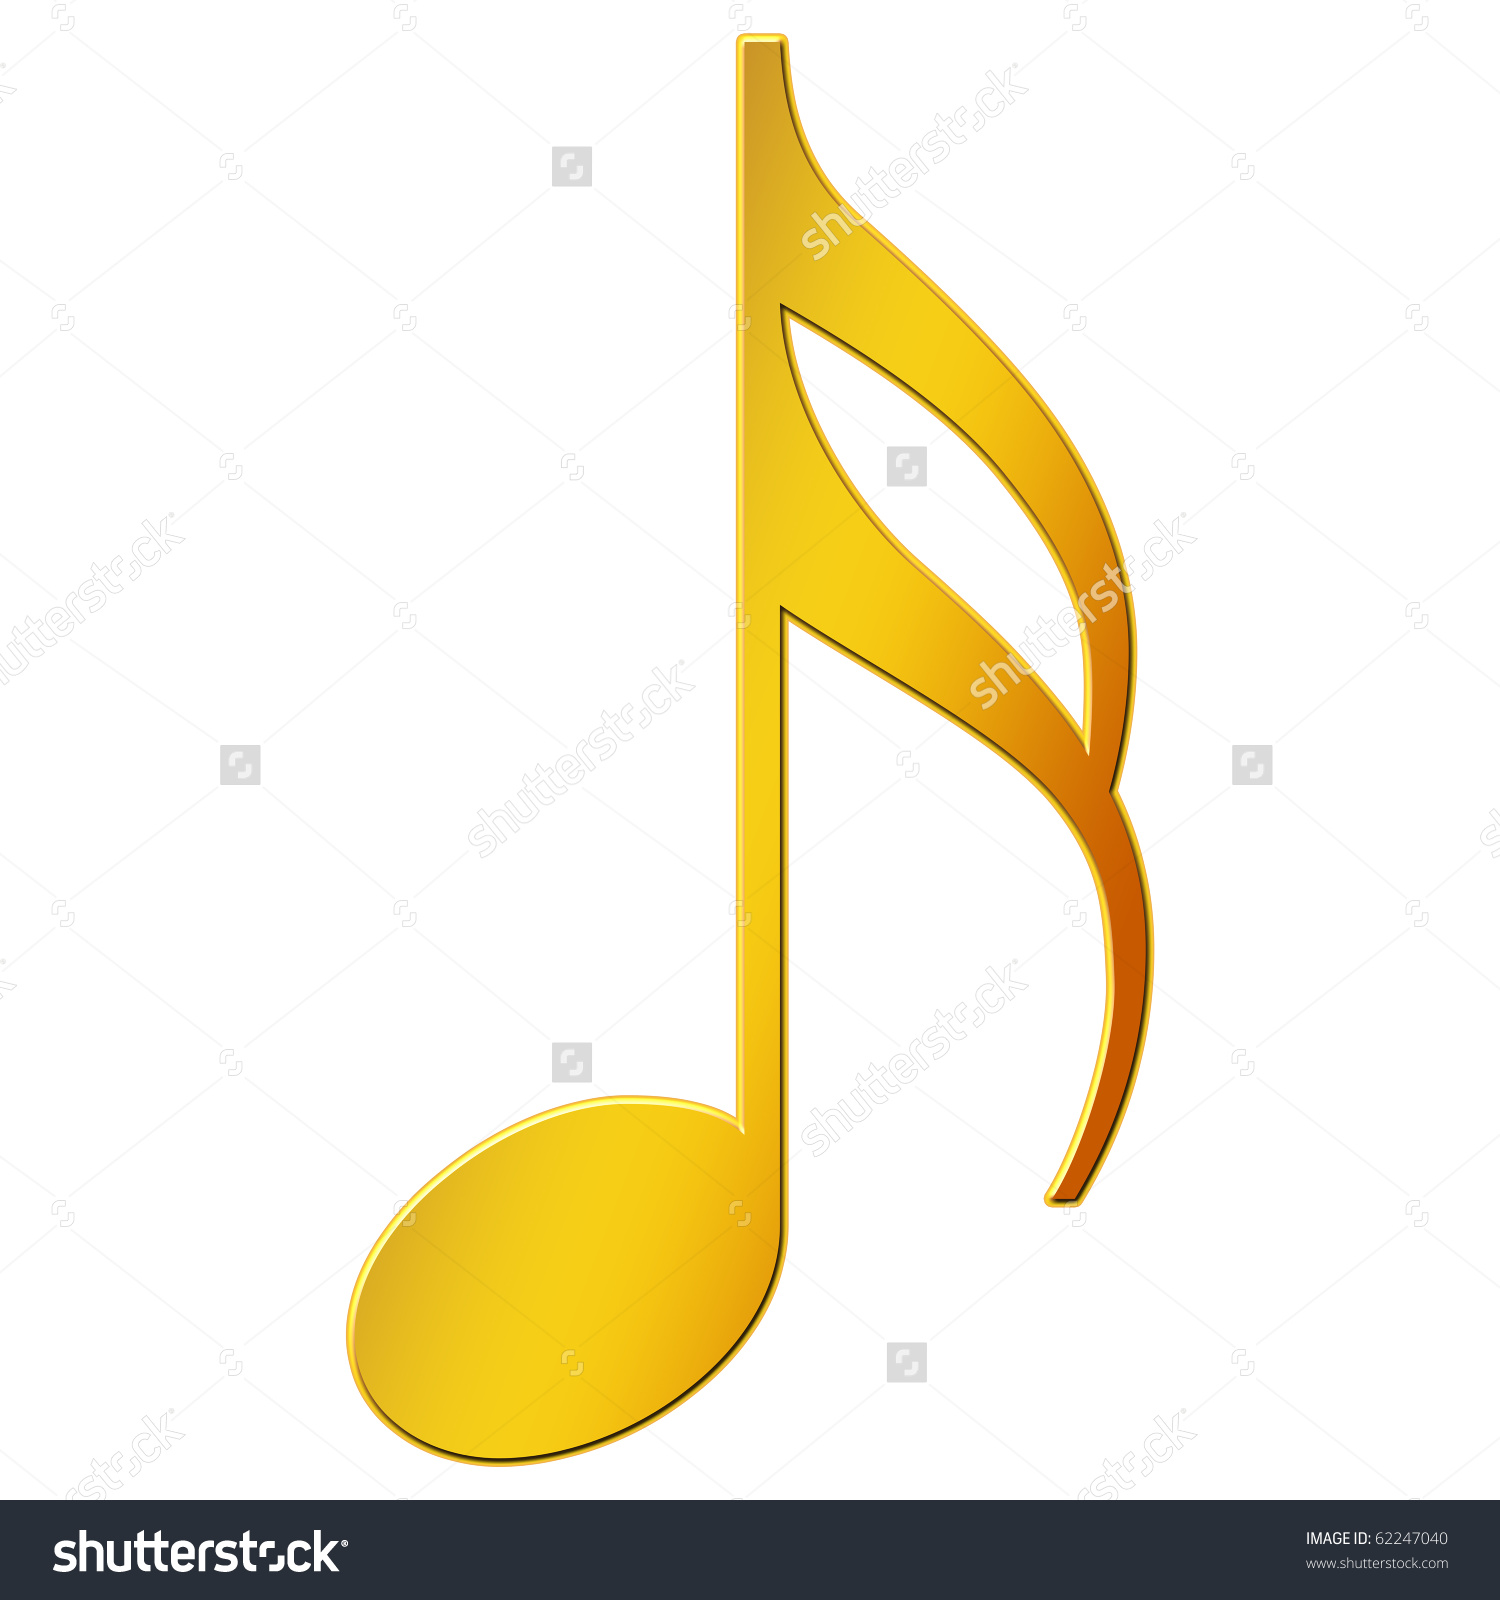 Gold music notes clipart clipground music note sixteenth note gold color stock illustration 62247040 biocorpaavc